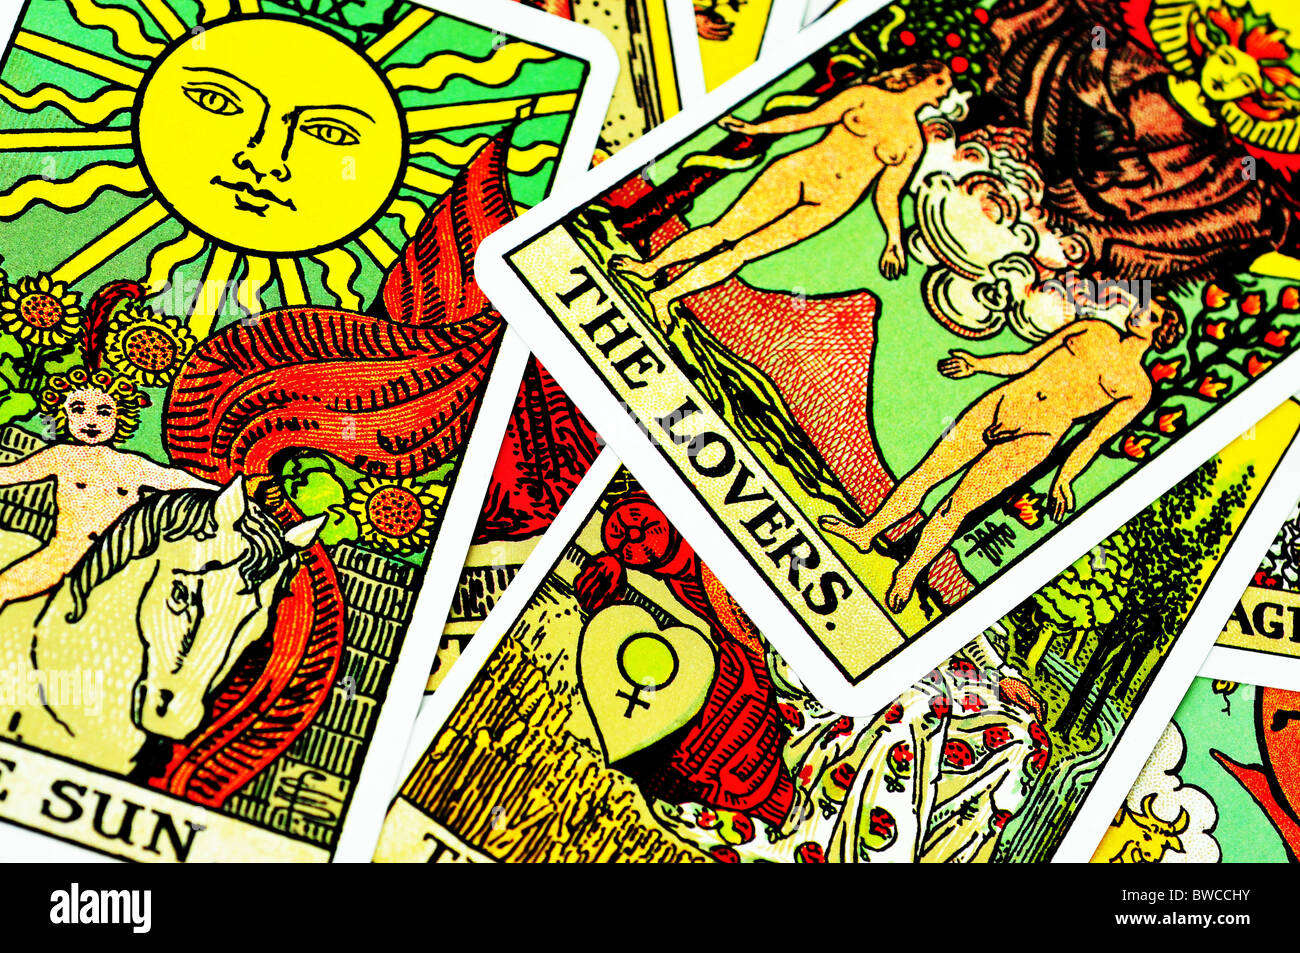 Fortune telling Tarot cards